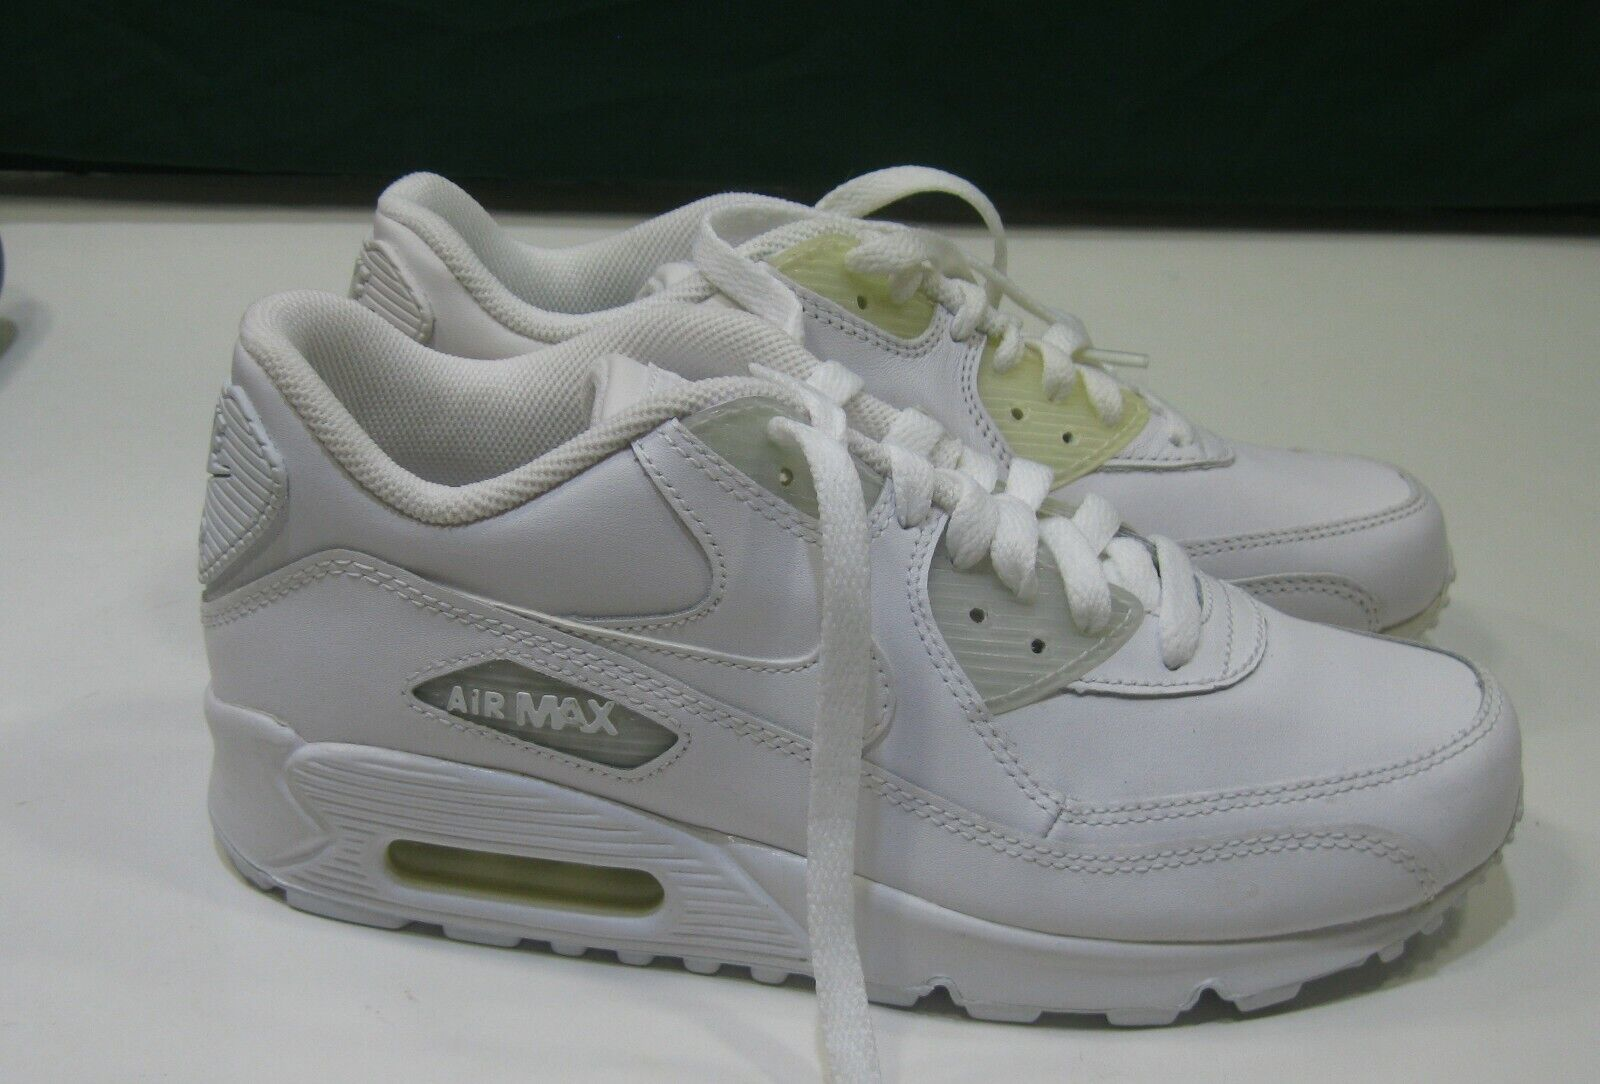 Nike Air Max 90 307793 111 leather White youth Size 5.5 women size 7